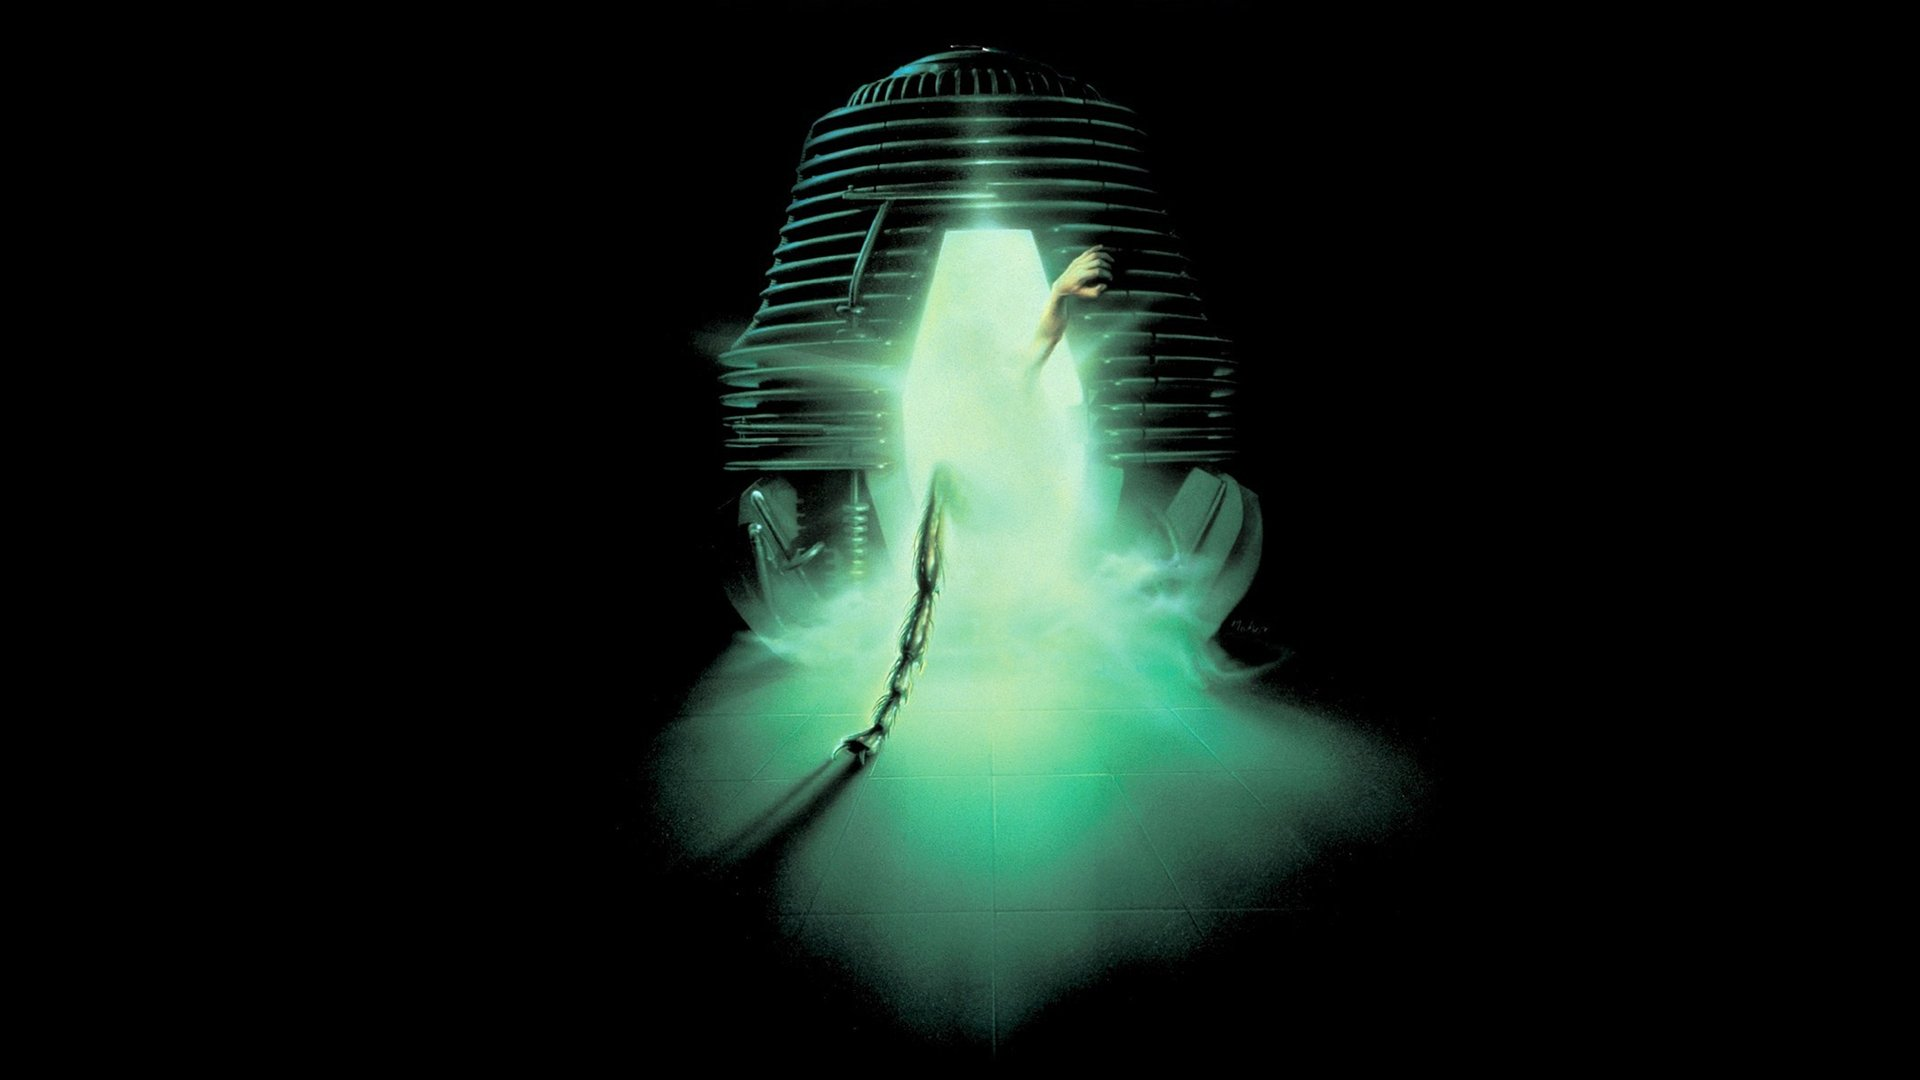 David Cronenberg's The Fly 1986 Film Review